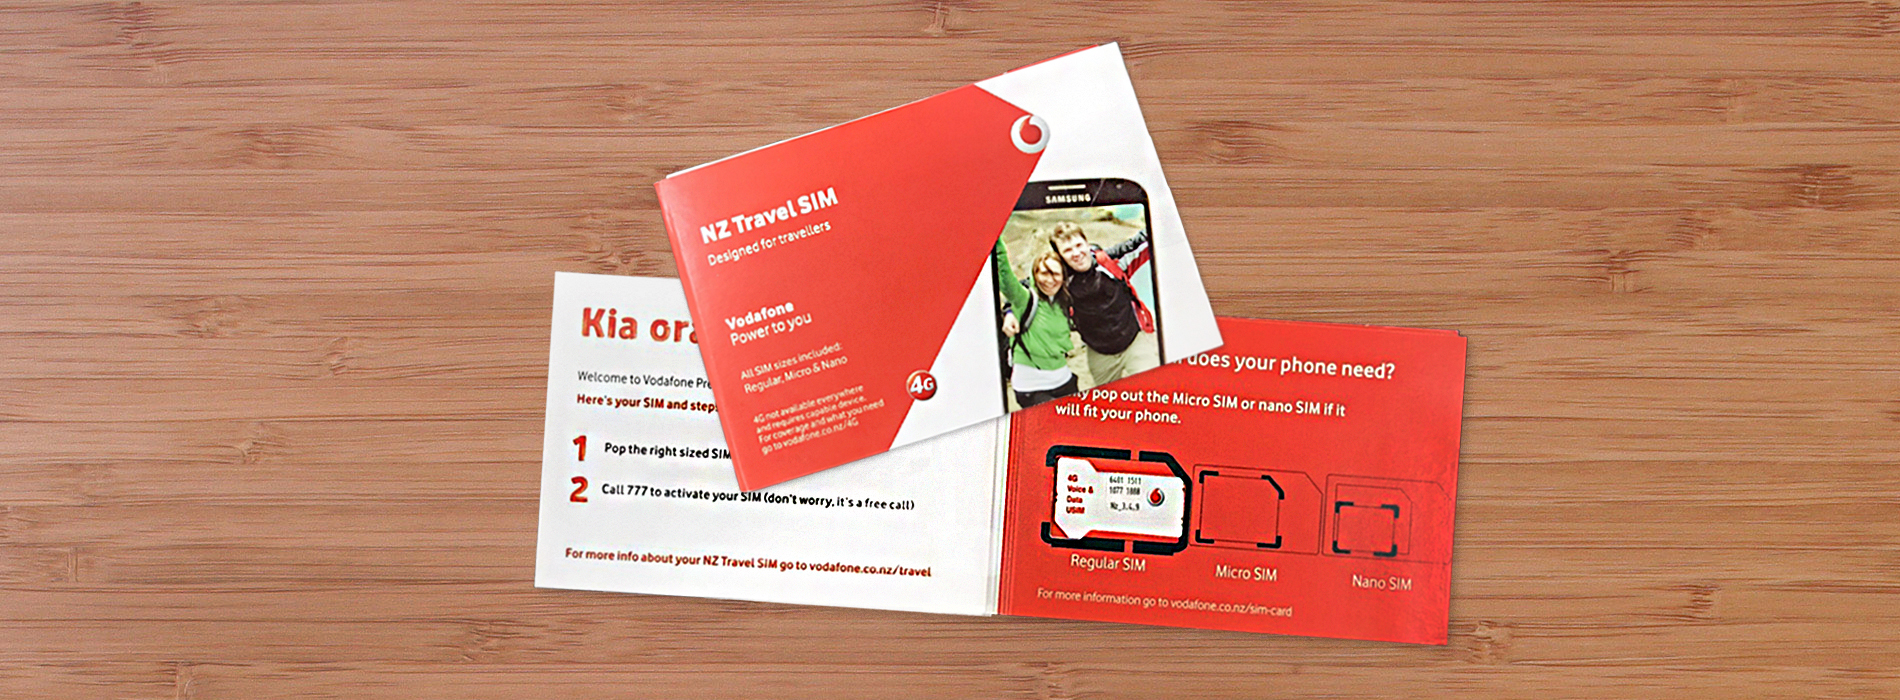 Places to Visit in -Vodafone 1GB-3GB Prepaid SIM For New Zea